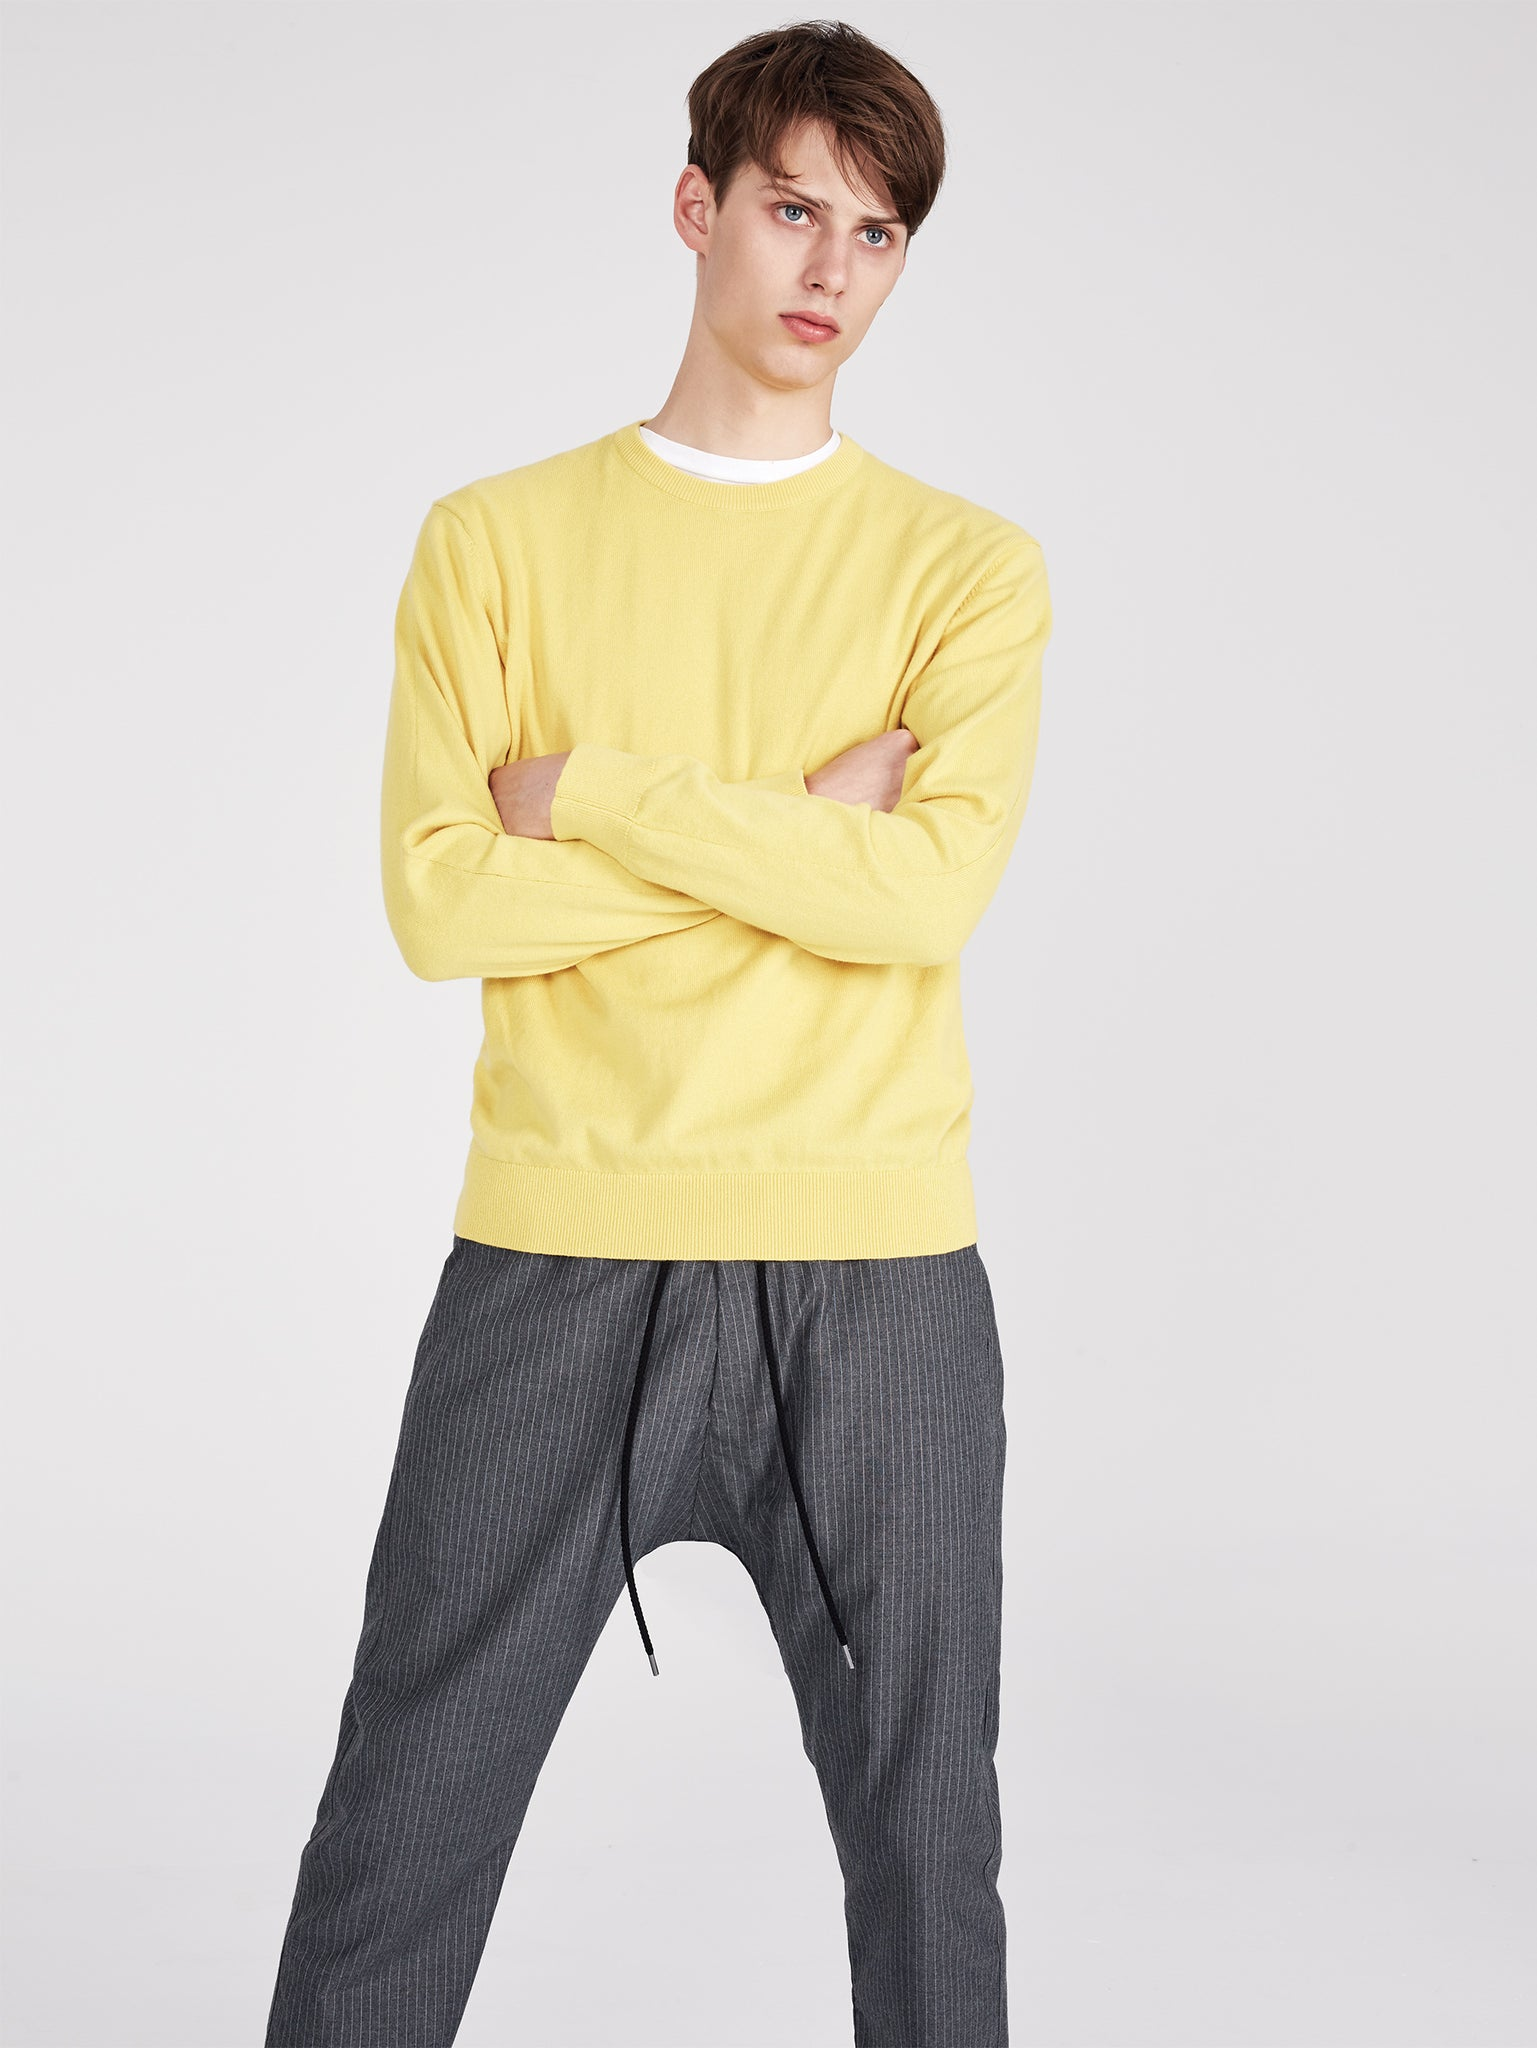 men spring summer 2019 look 11